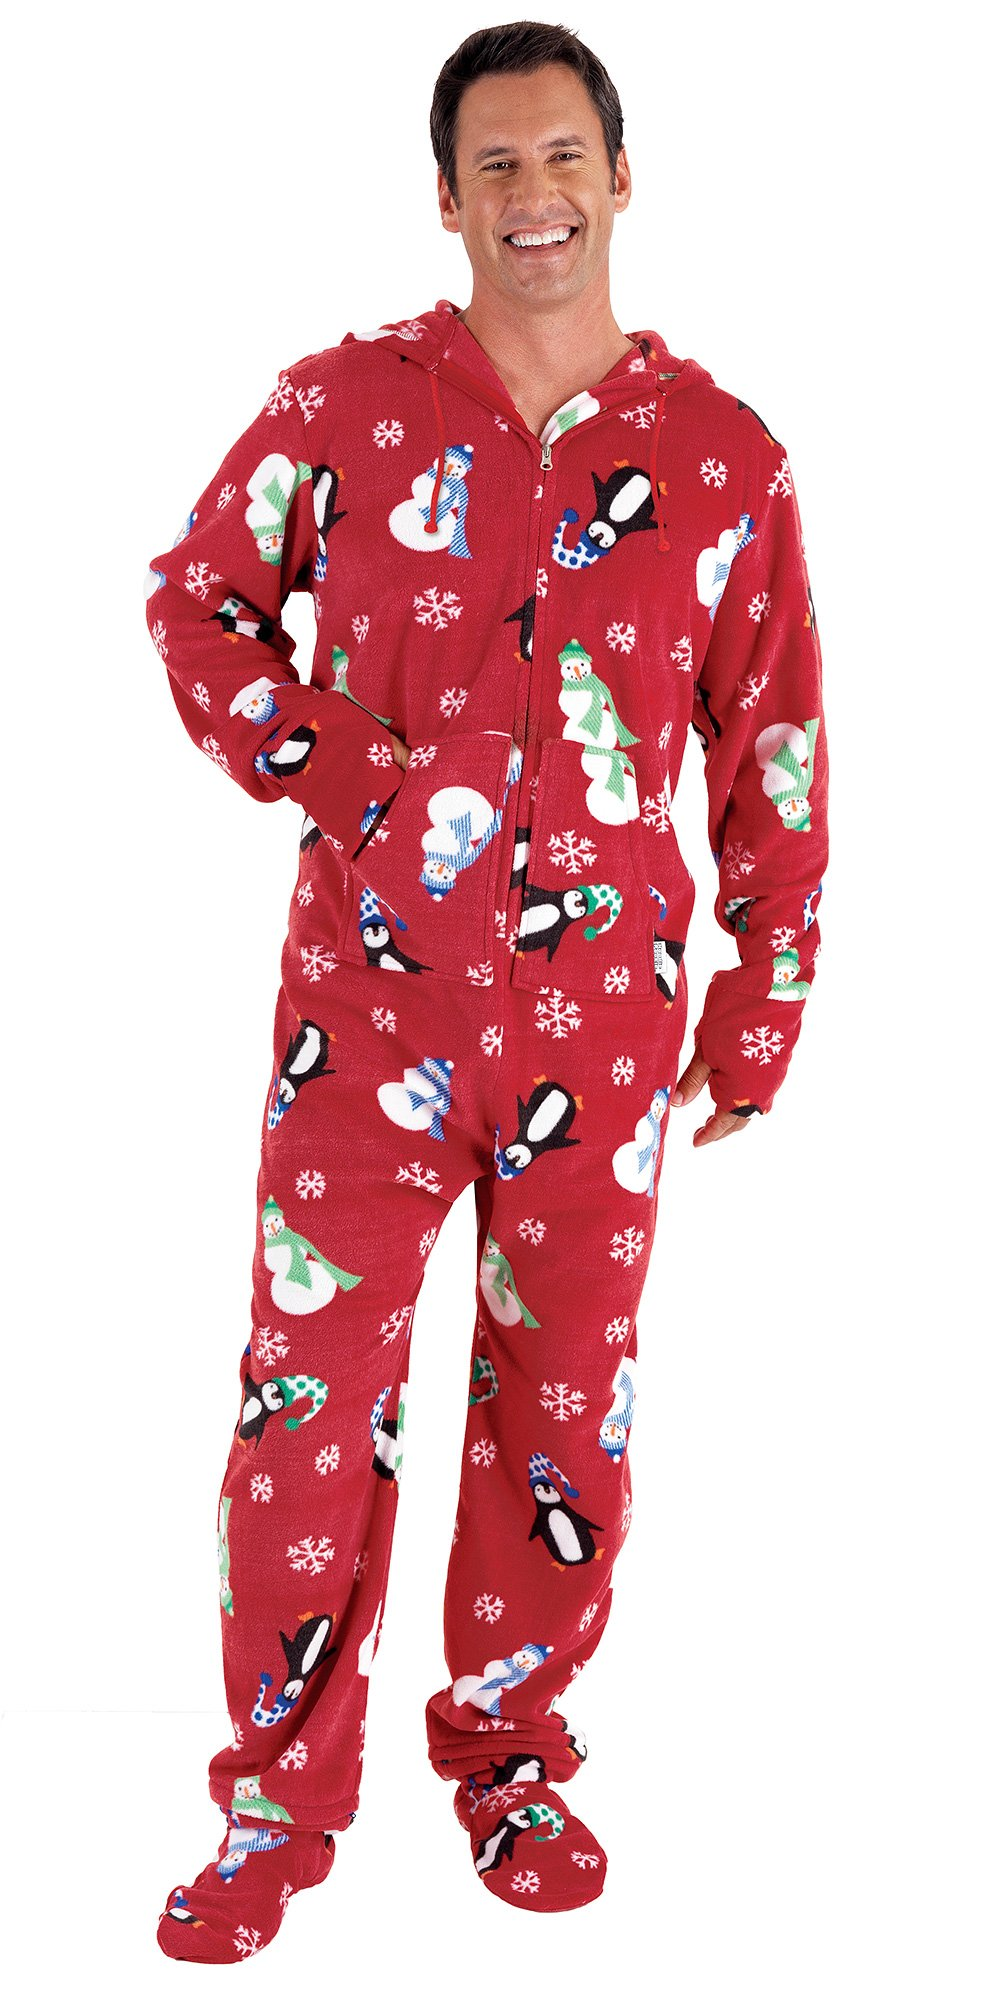 Shop Target for Family Pajamas you will love at great low prices. Free shipping on orders of $35+ or free same-day pick-up in store.